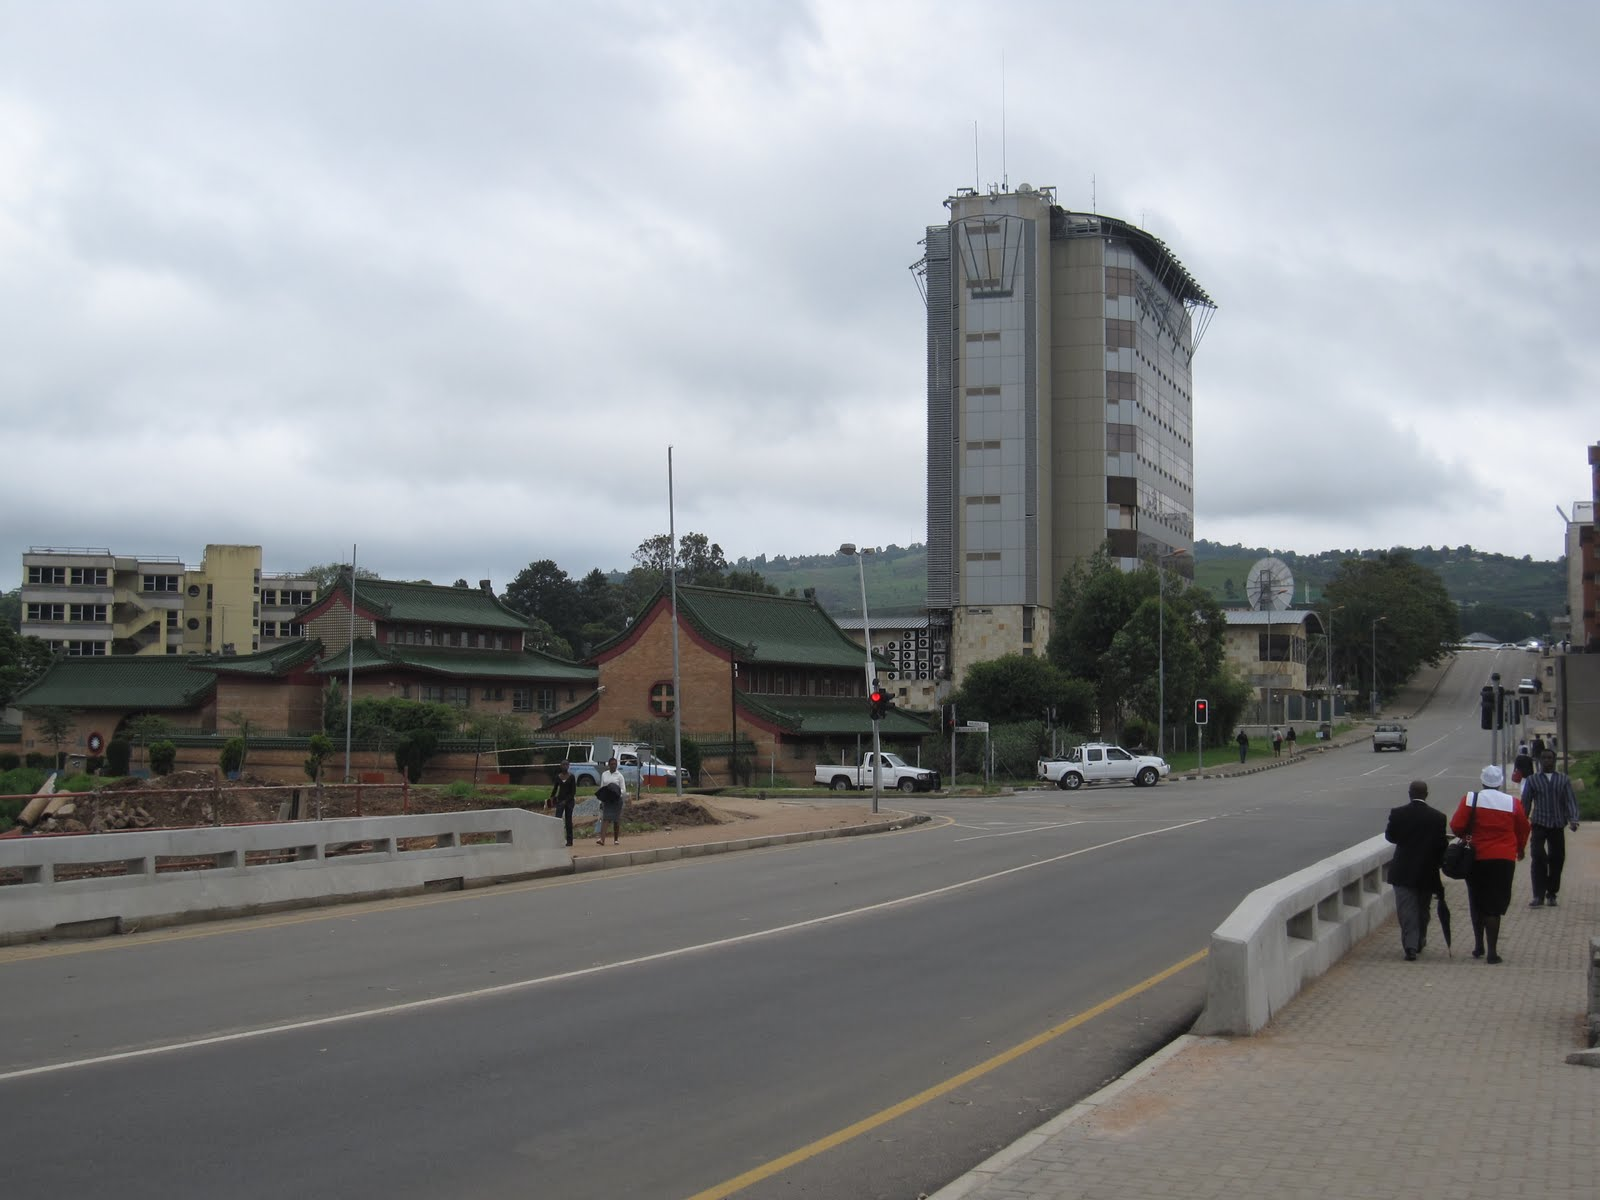 Mbabane, Swaziland's capital, Taiwan's mission on the left, the towering US Embassy on the right